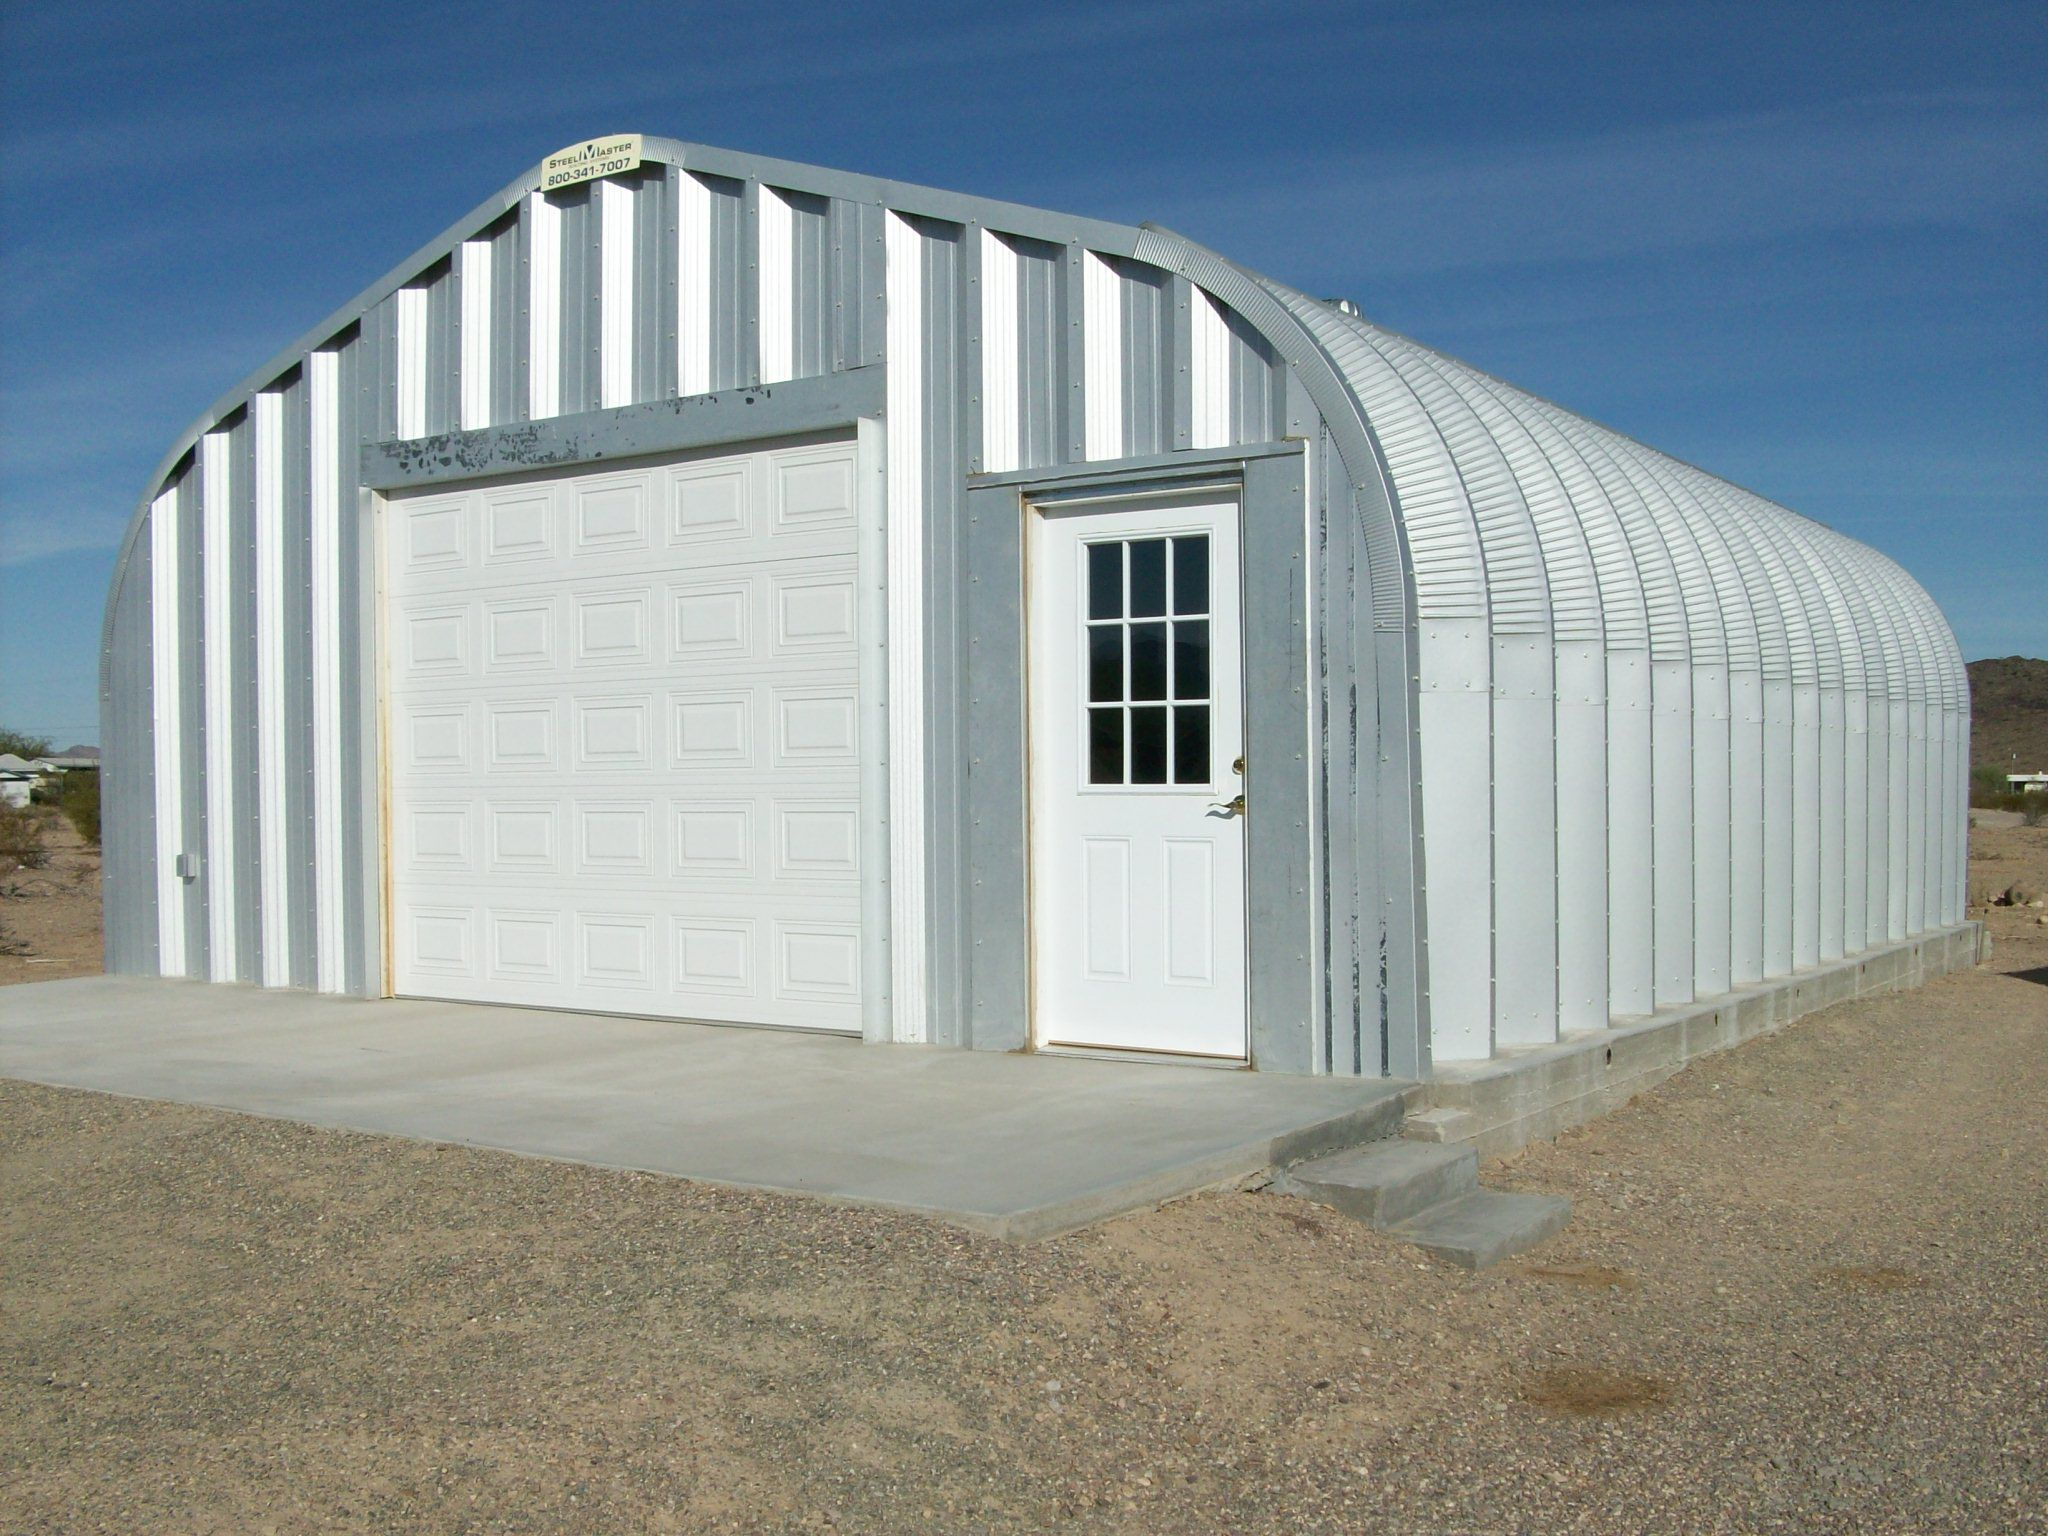 SteelMaster Buildings is a global provider of